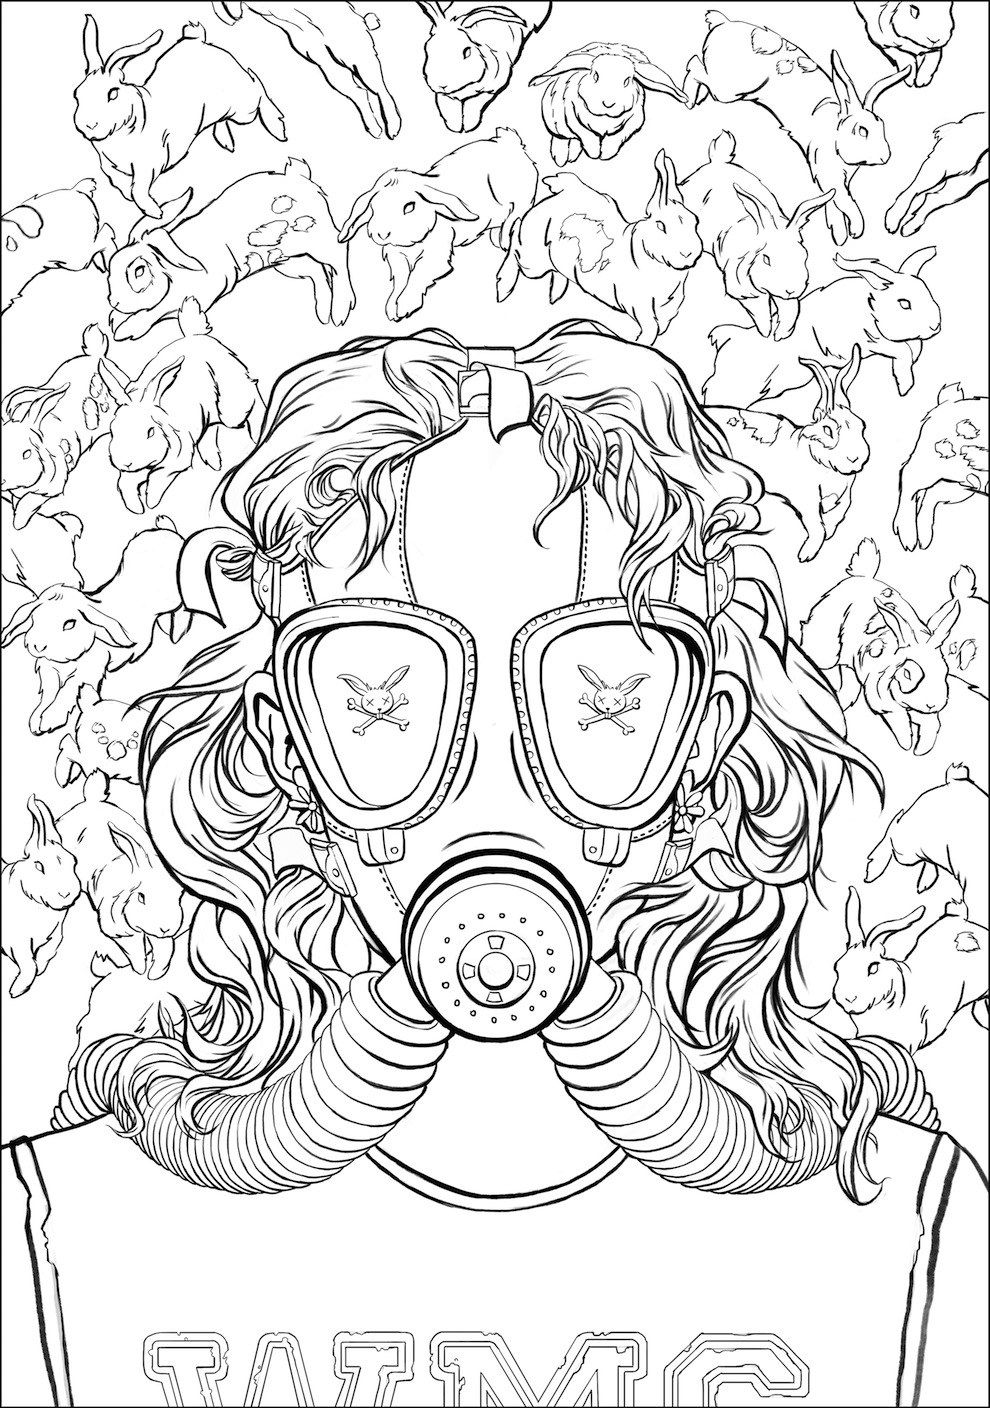 Here S The First Look At Chuck Palahniuk Coloring For